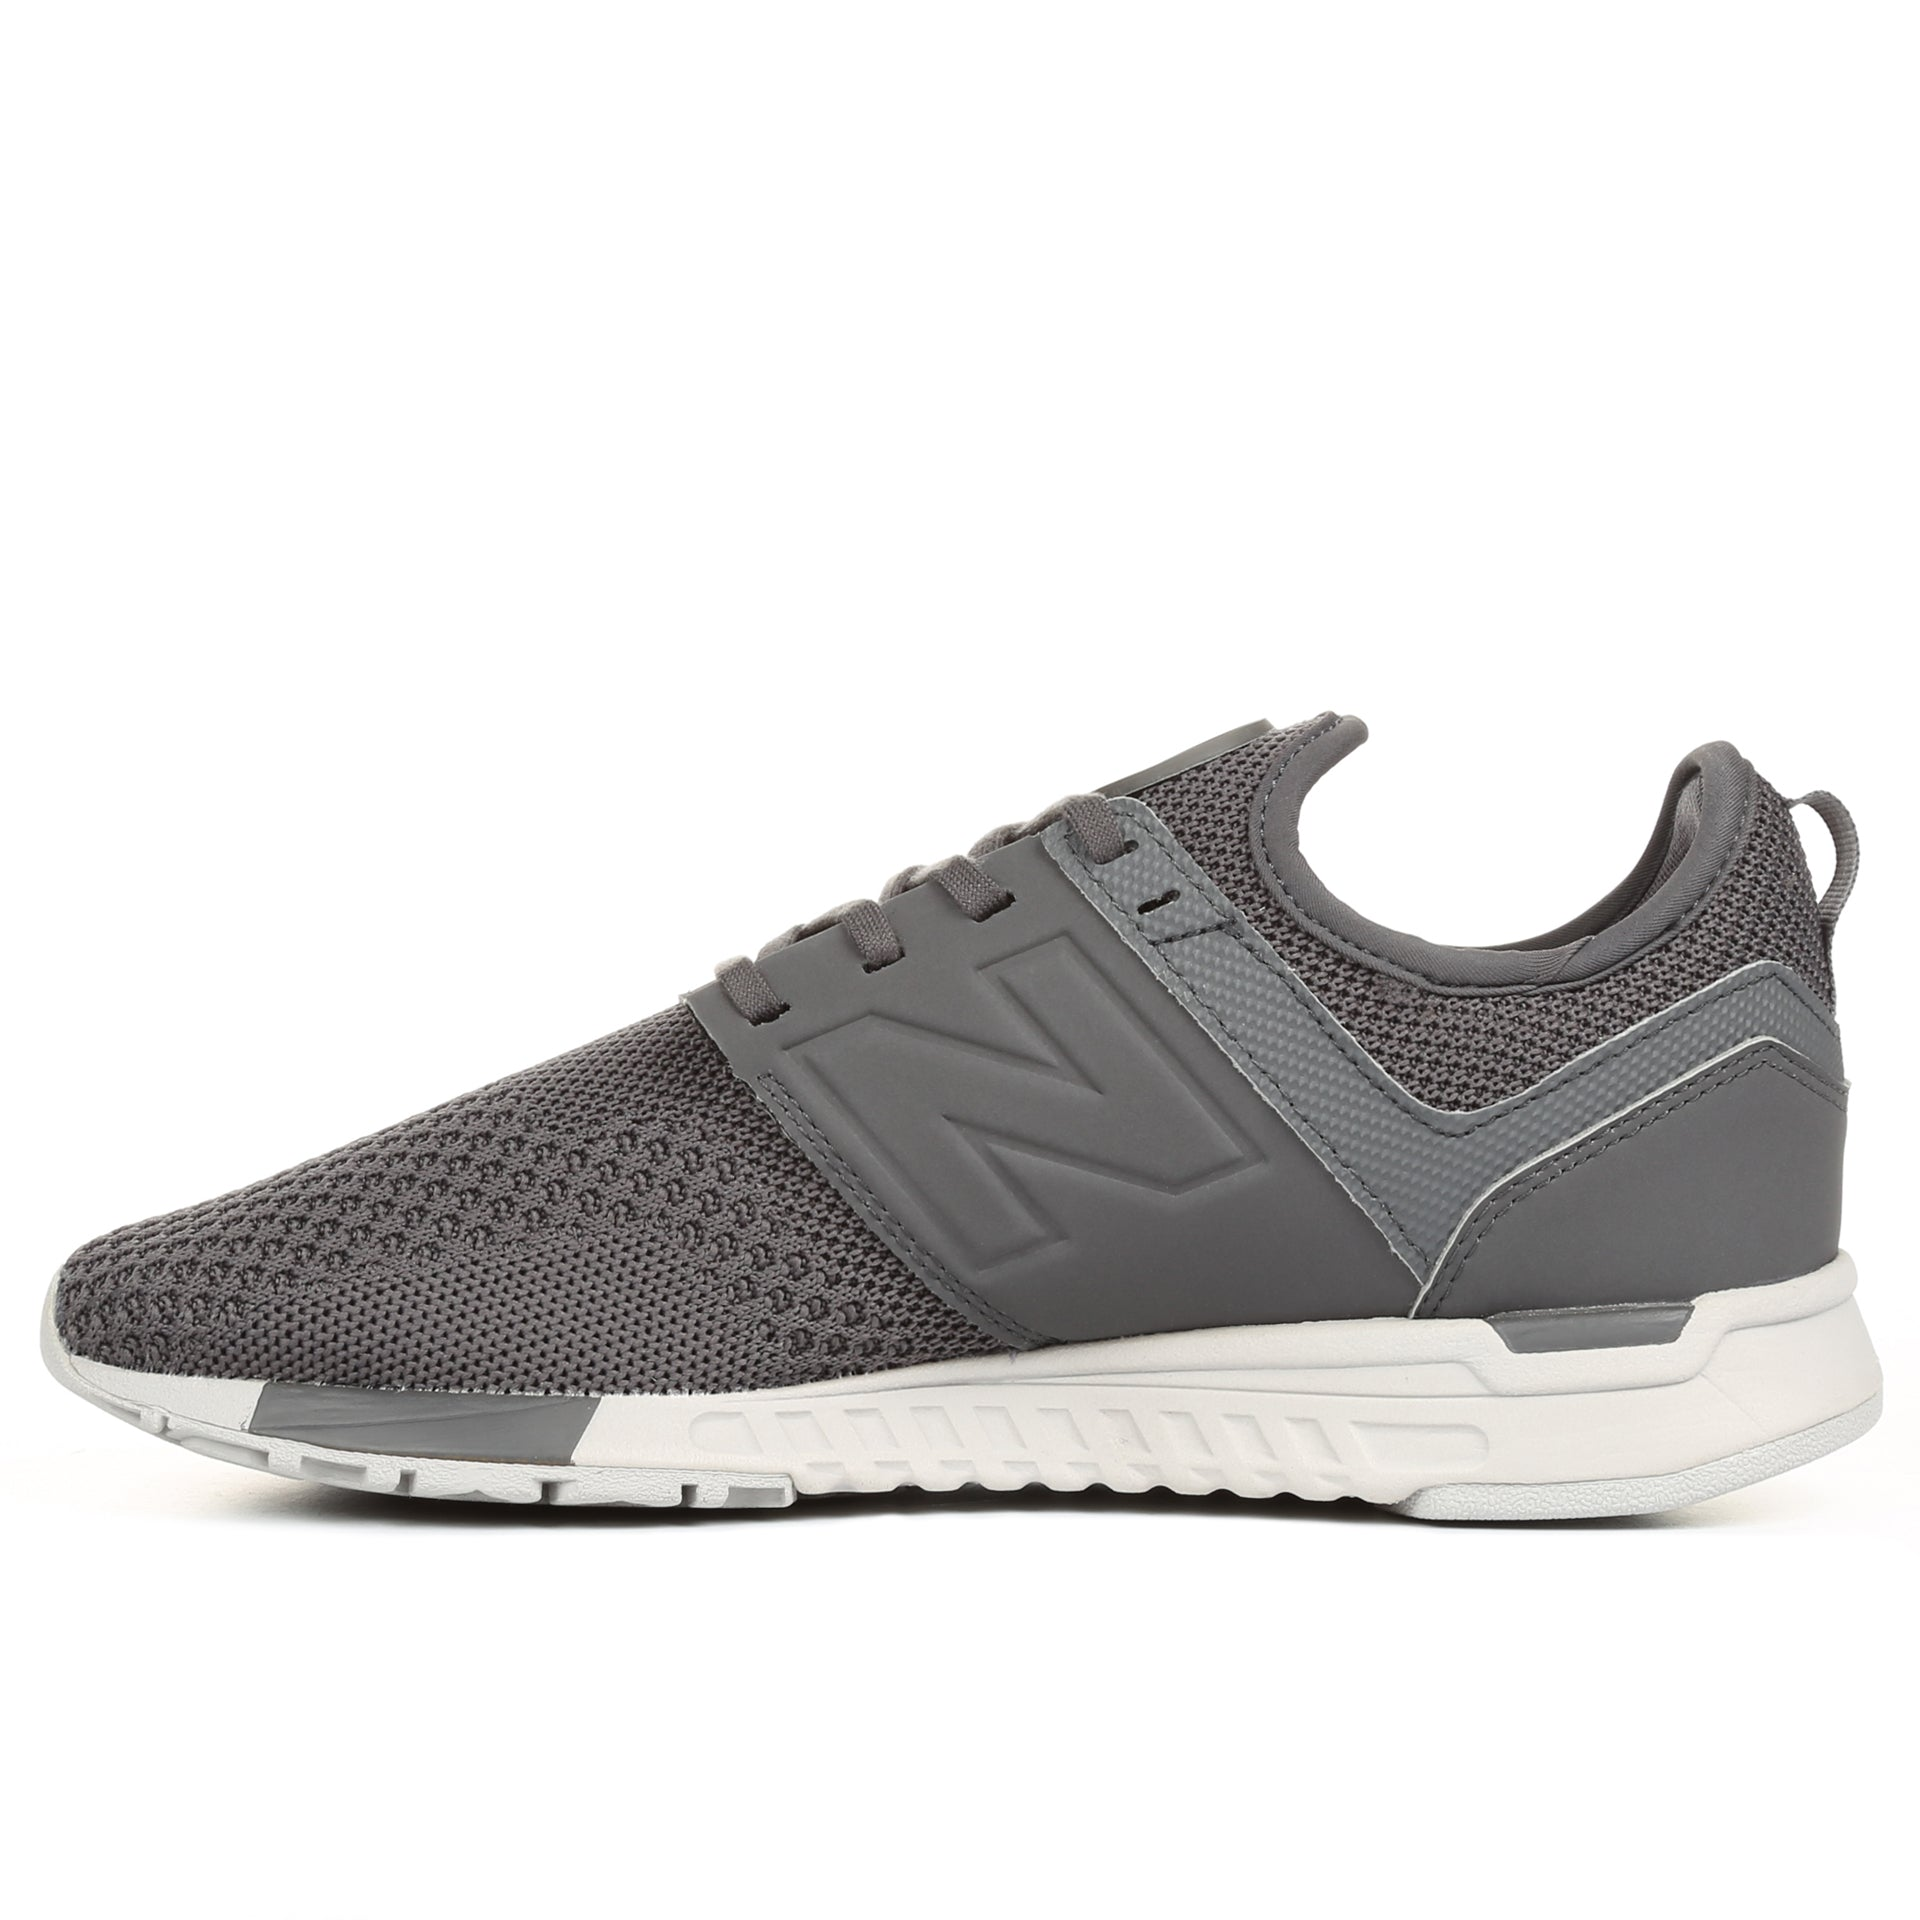 247 CLASSIC - FOOTWEAR - Low-tops & sneakers New Balance D0CxWQpw6